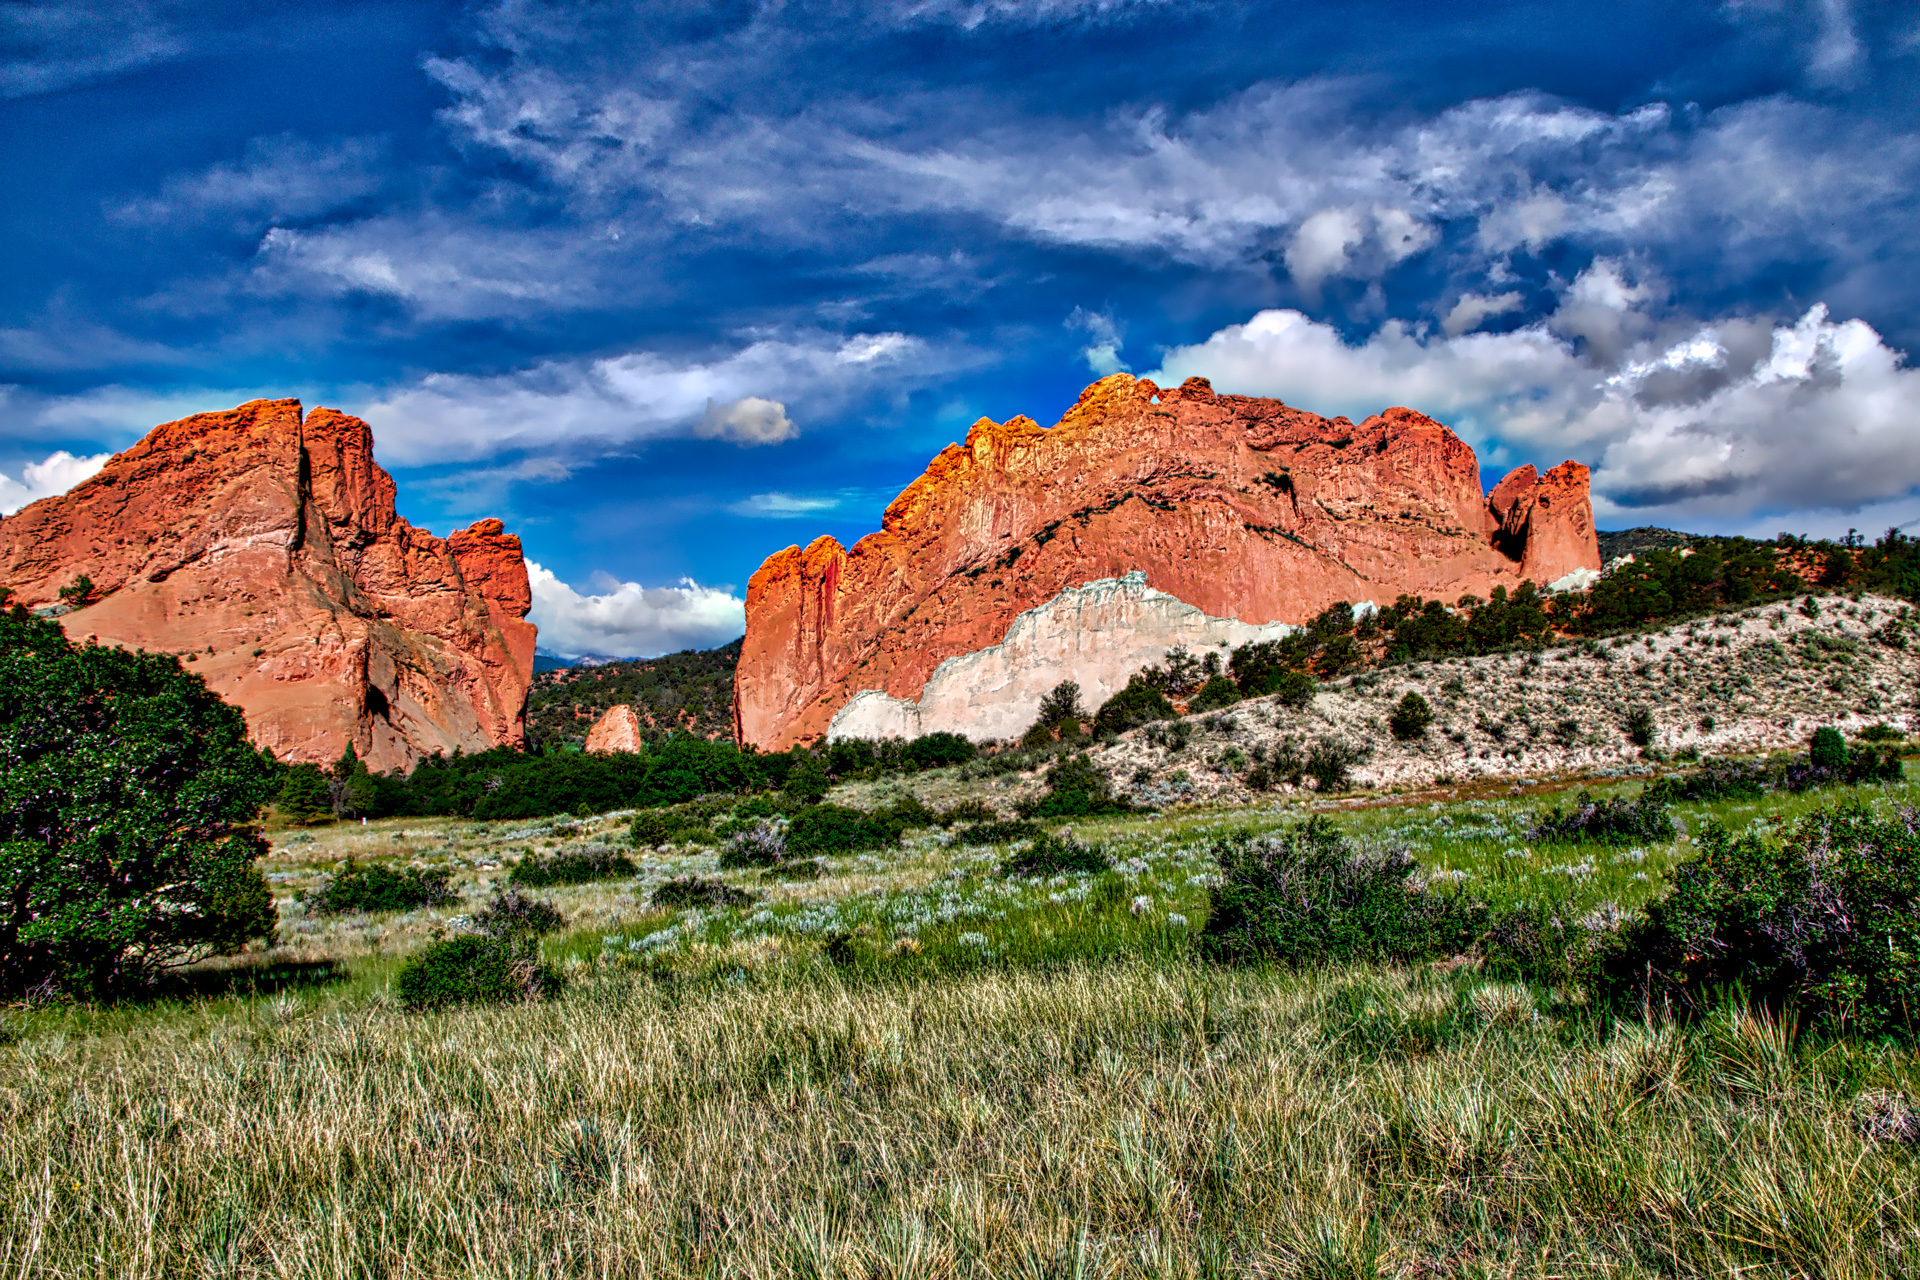 The clouds, sky, grass, and rock formations just seemed to all come together in this photo. Red Rocks, in Colorado Springs, CO, is a truly specular place to visit.